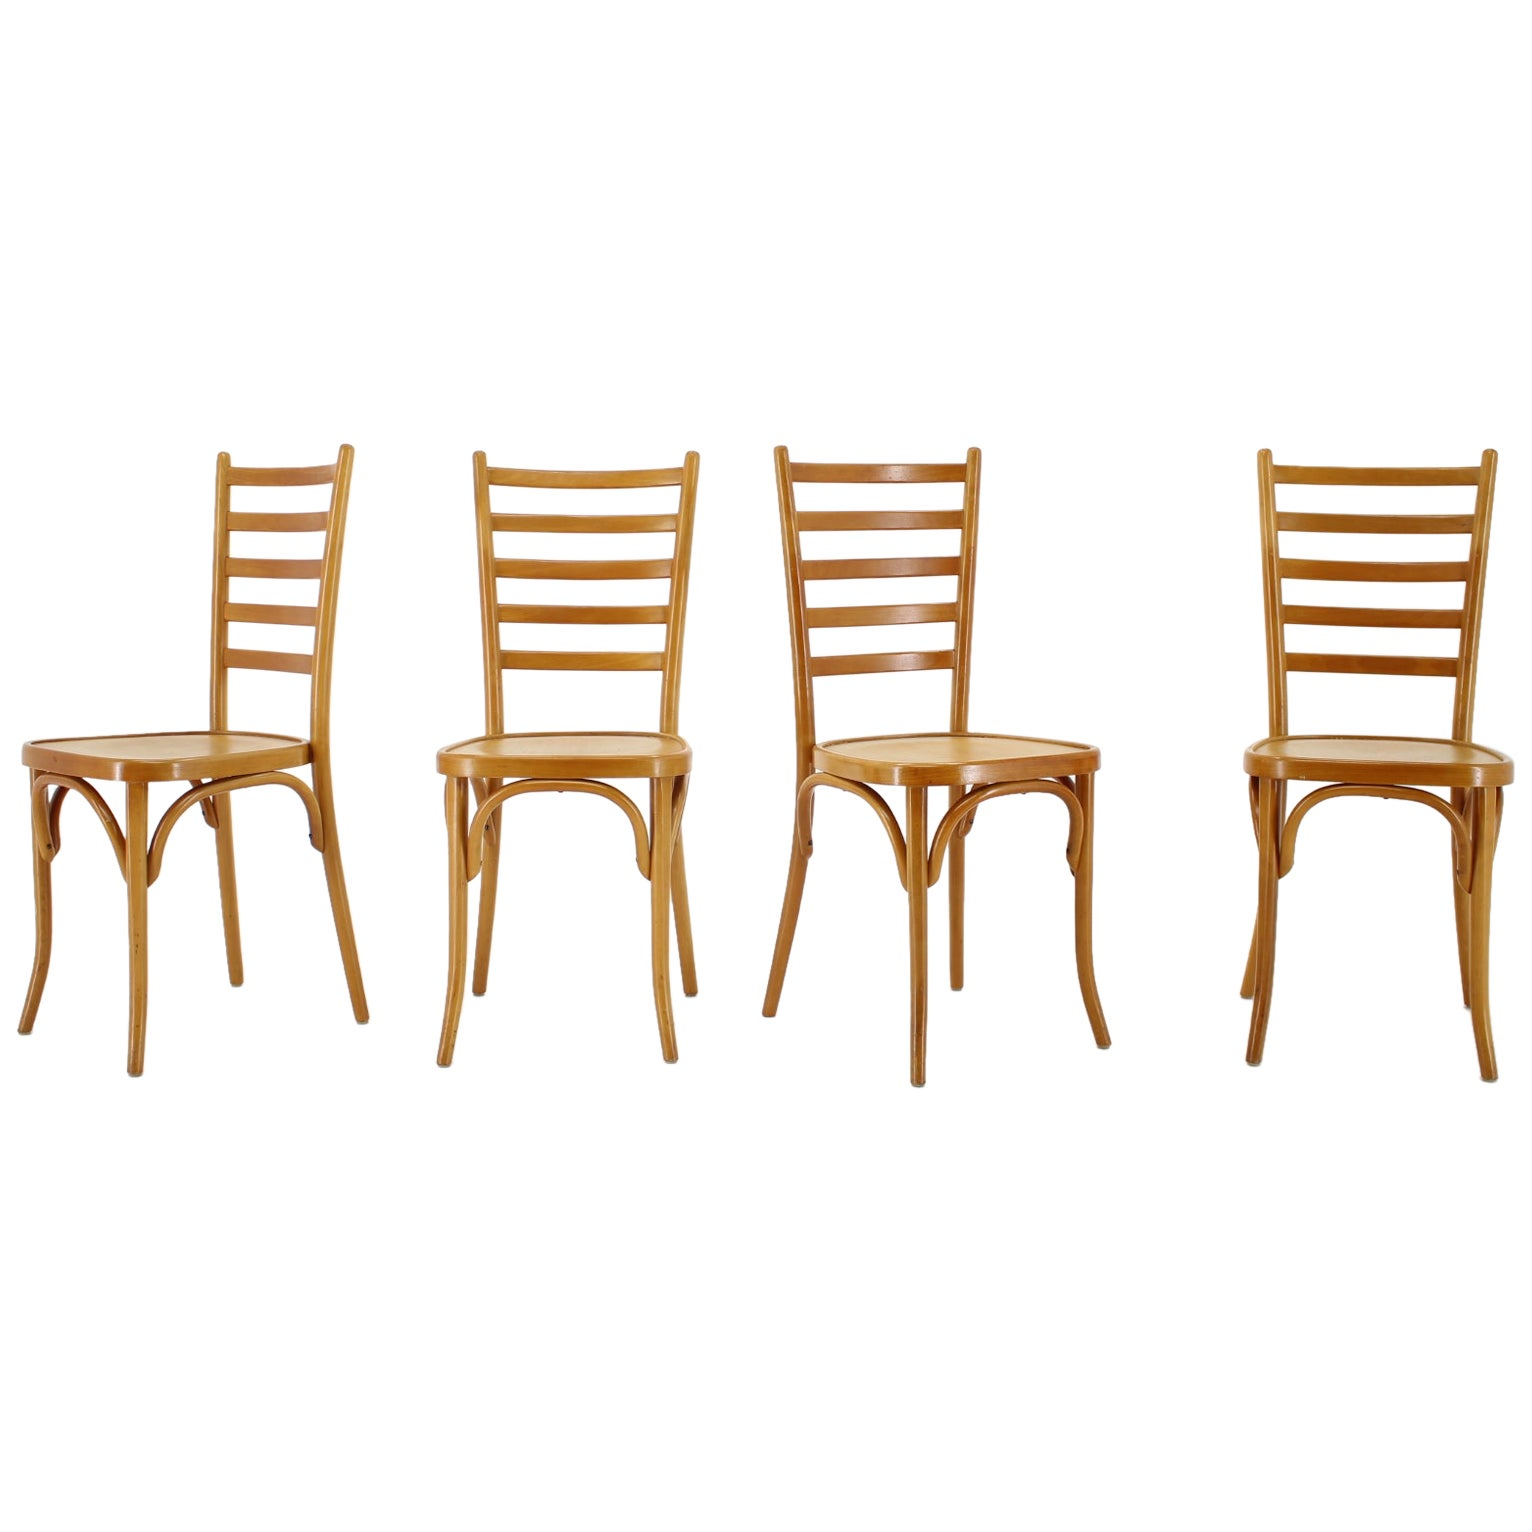 1970s Italian Dining Chairs, Set of 4